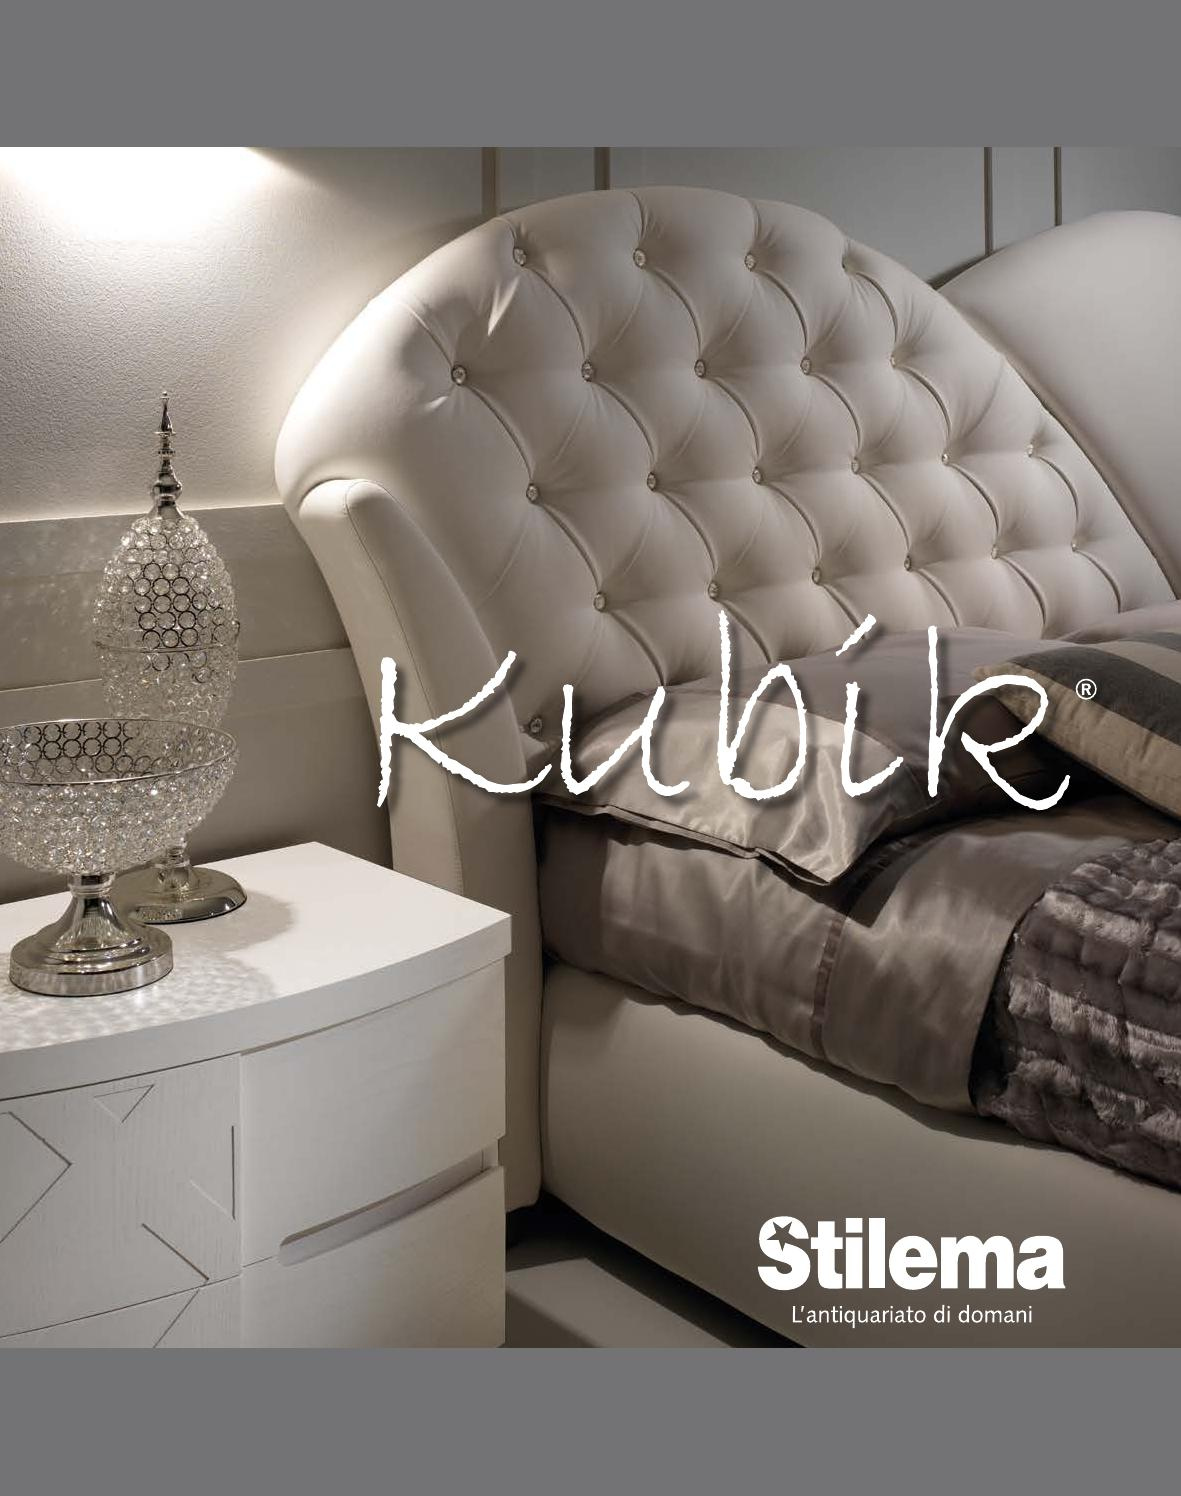 Stilema kubik by stilema mobili issuu - Termoarredo camera da letto ...